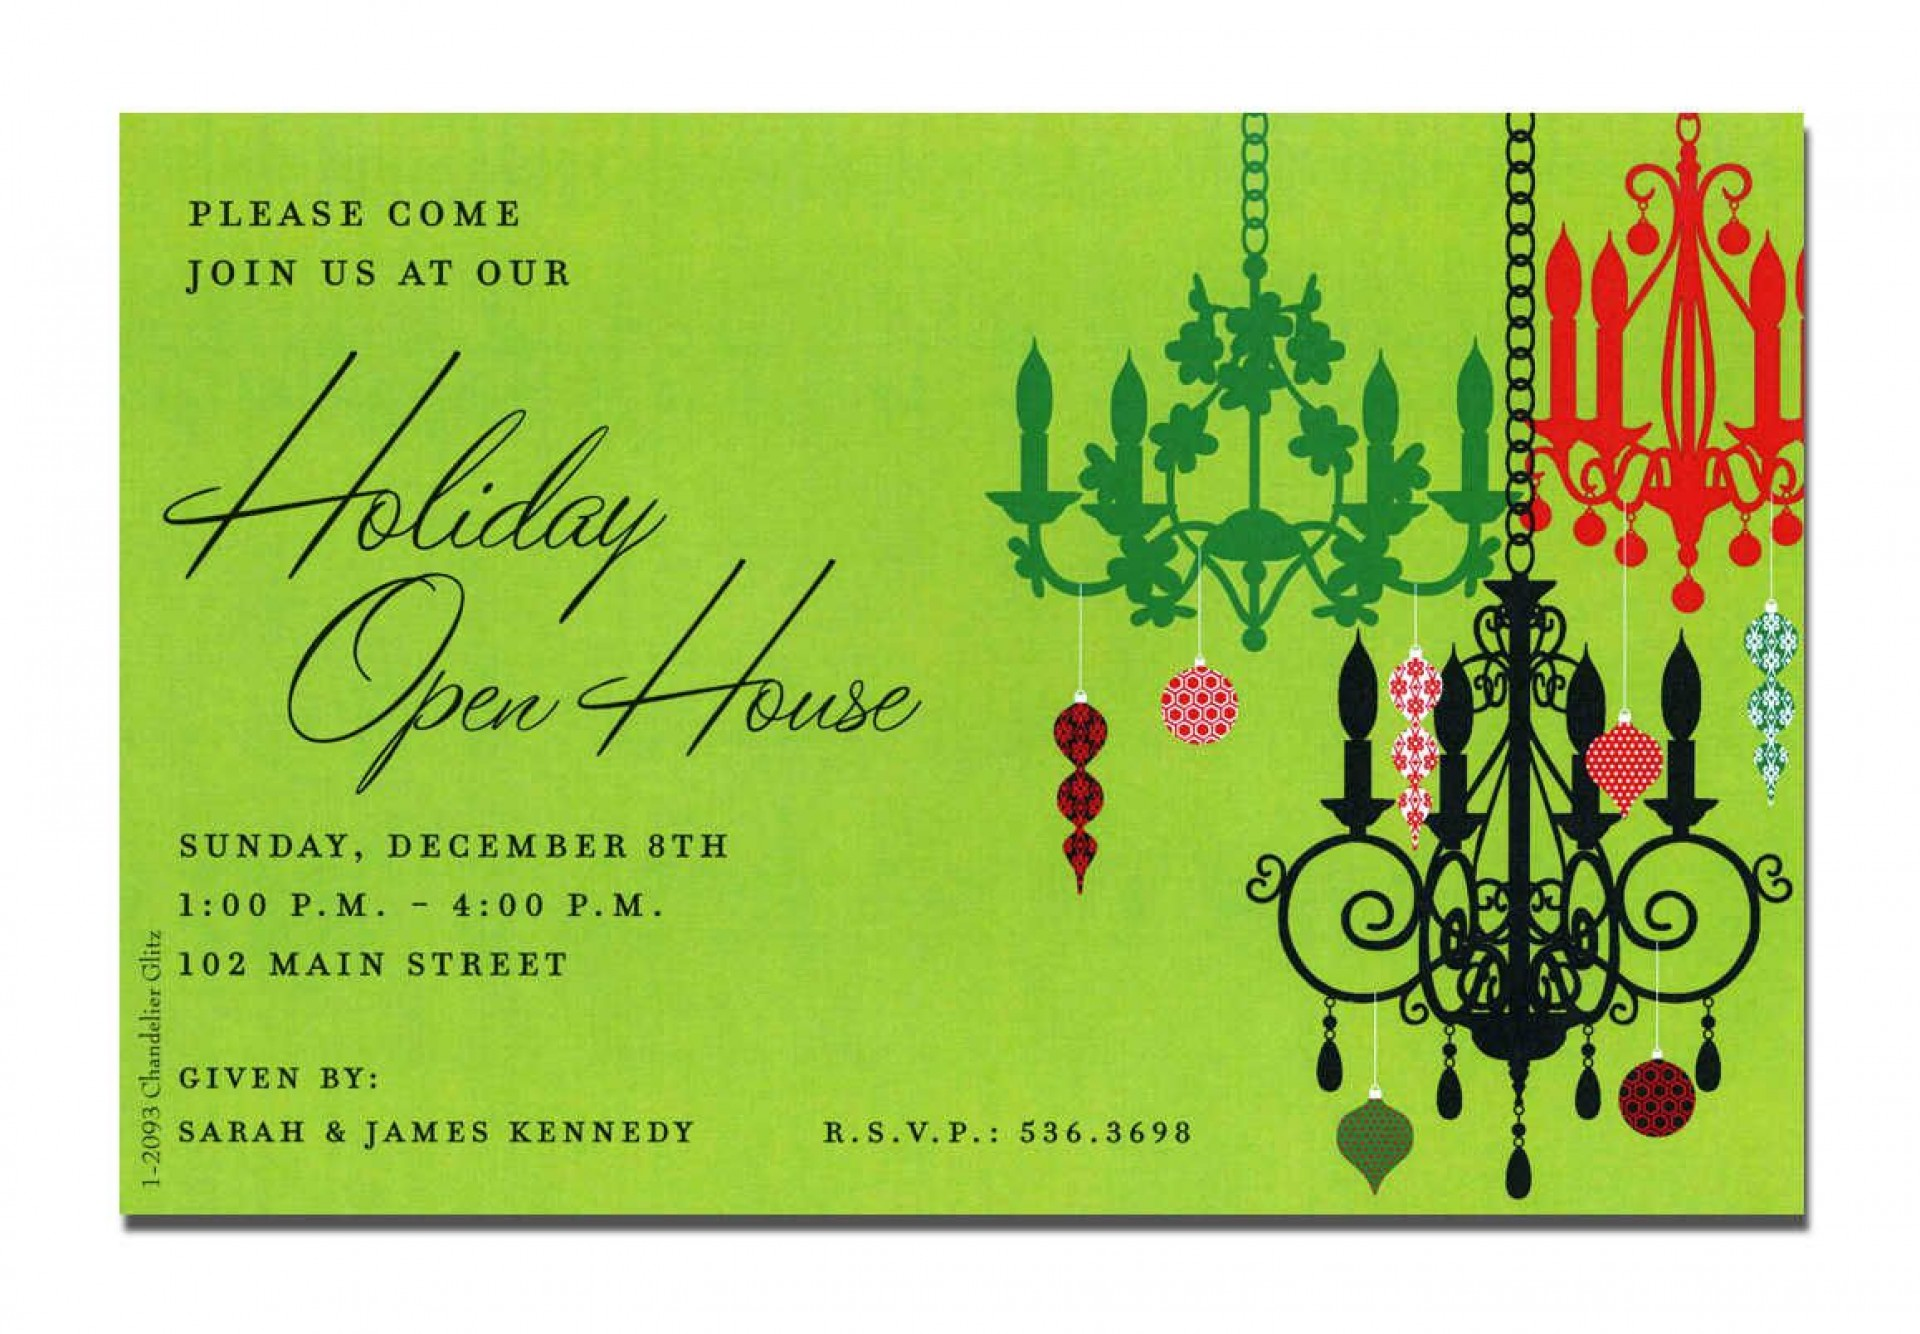 005 Magnificent Holiday Open House Invitation Template Image  Christma Free Printable Wording Idea1920